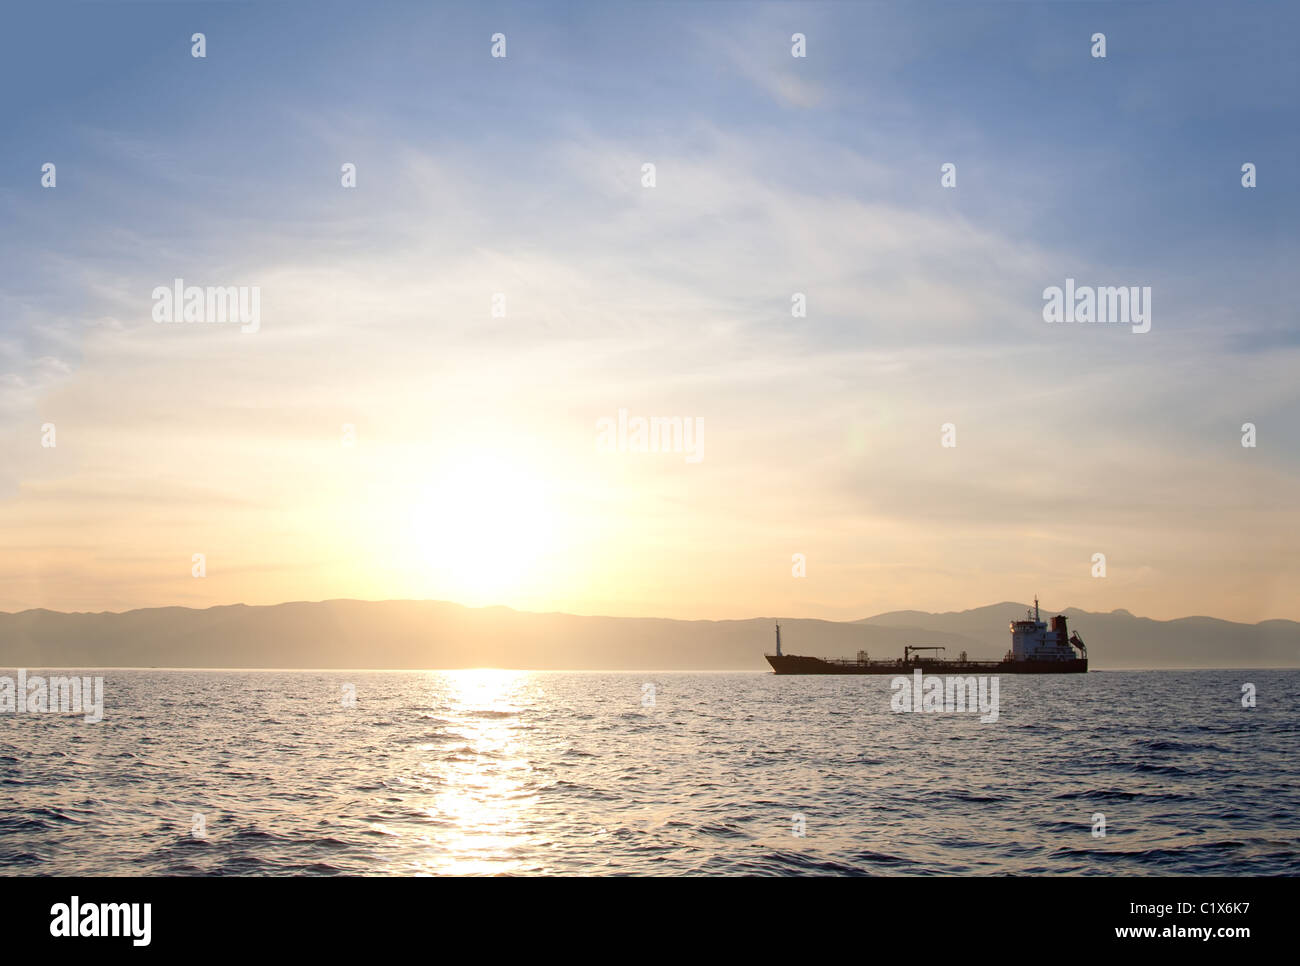 Bulk-carrier ship at sunset in the sea - Stock Image